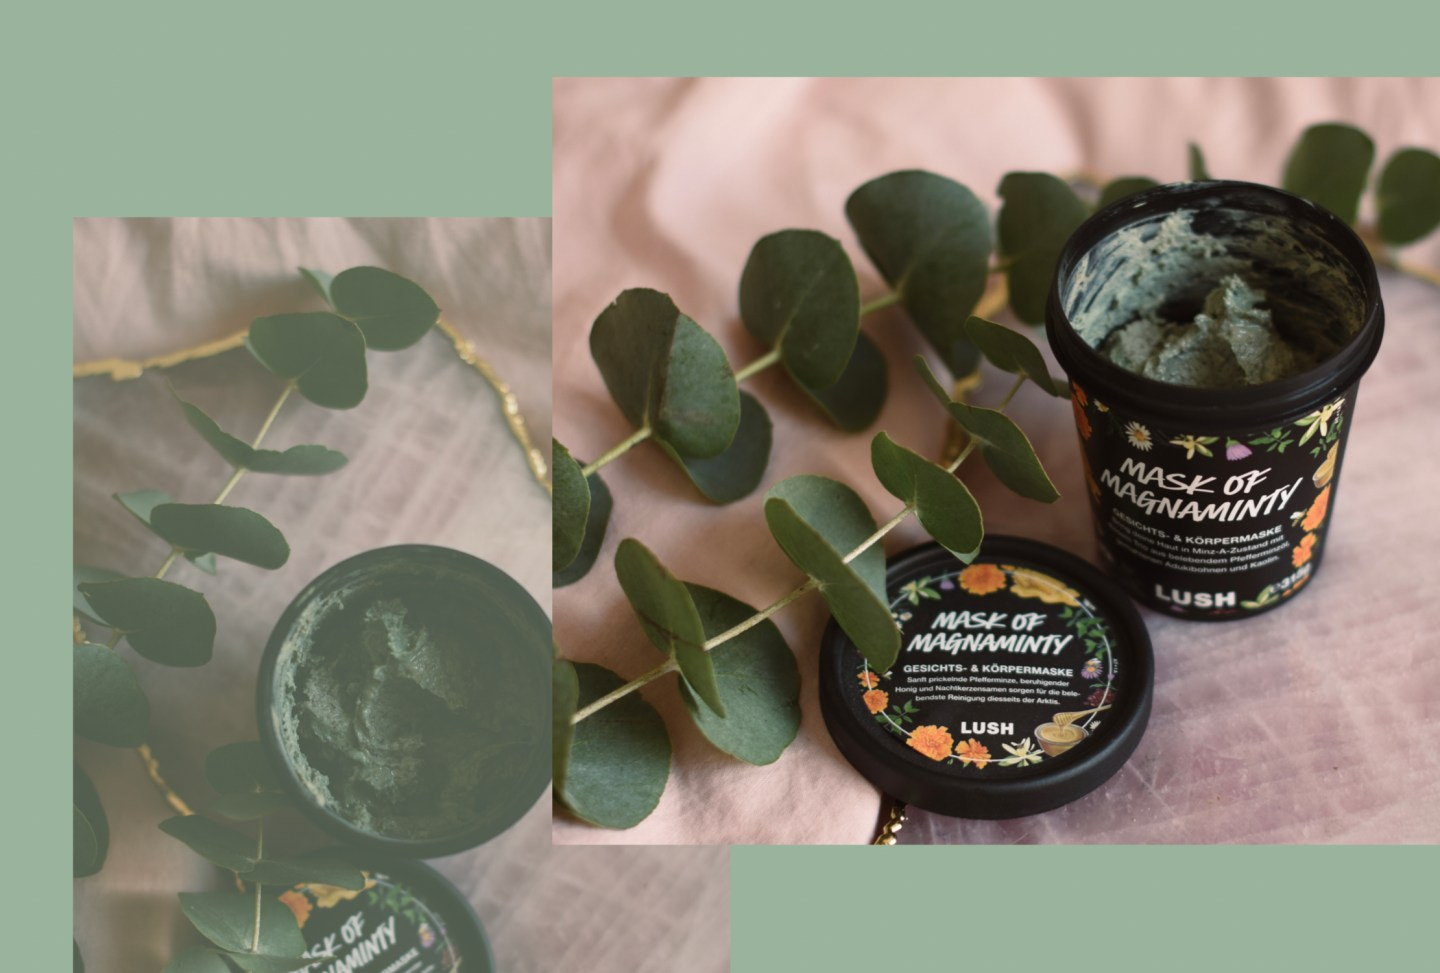 Lush Cosmetics: Mask of Magnaminty self-preserving